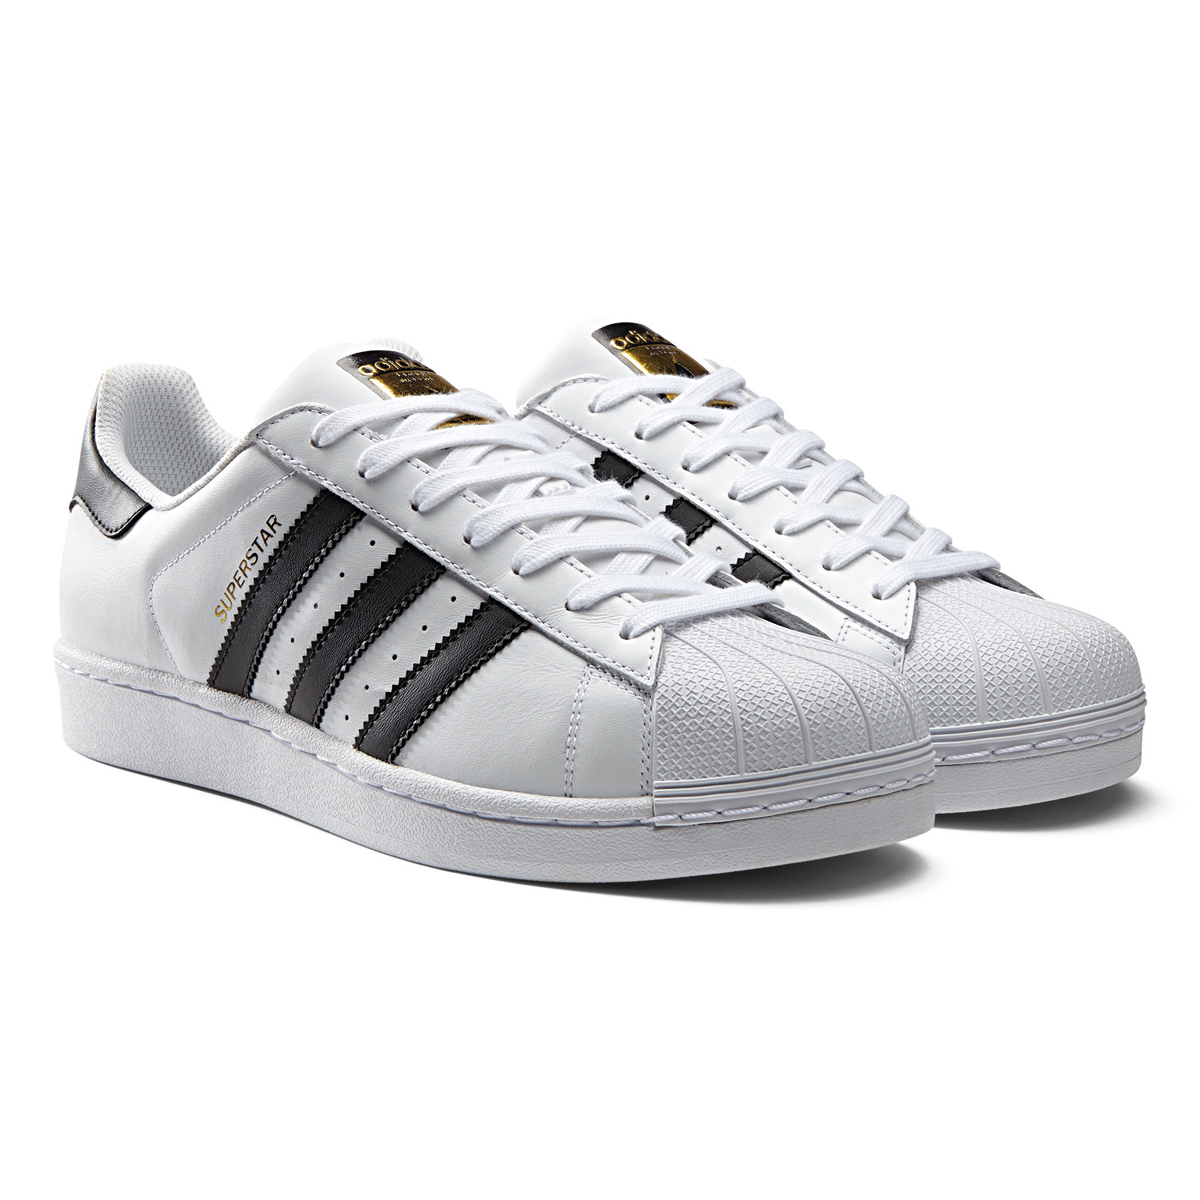 Di SuperstarUn'icona StileCon Tante Adidas Originals NovitàIn 9D2WIYEH